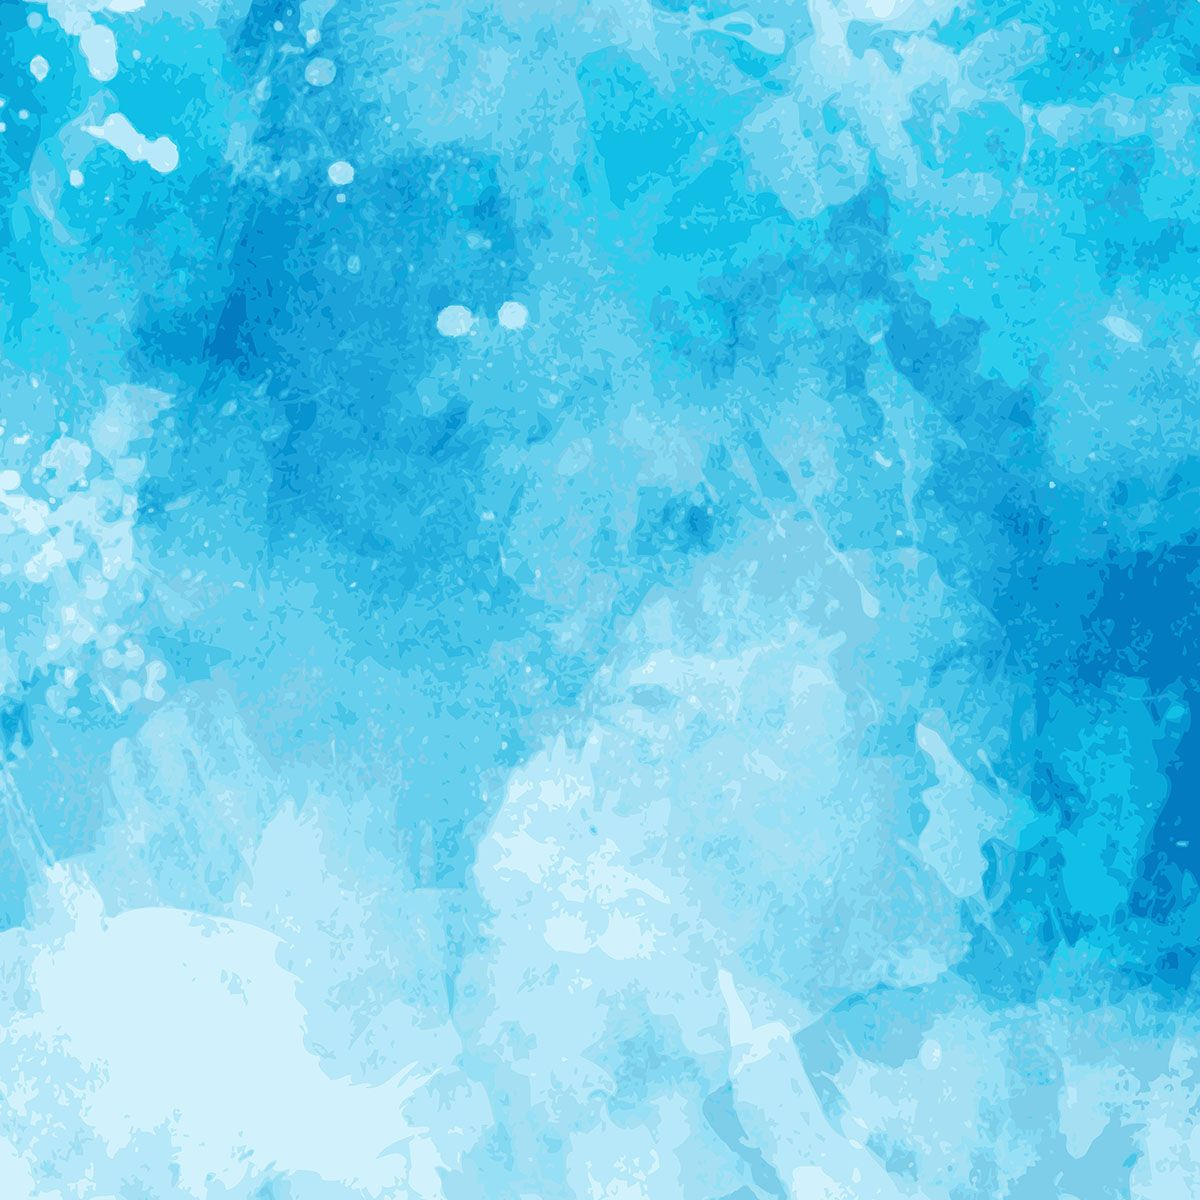 Watercolor Background Watercolour Texture Background Blue